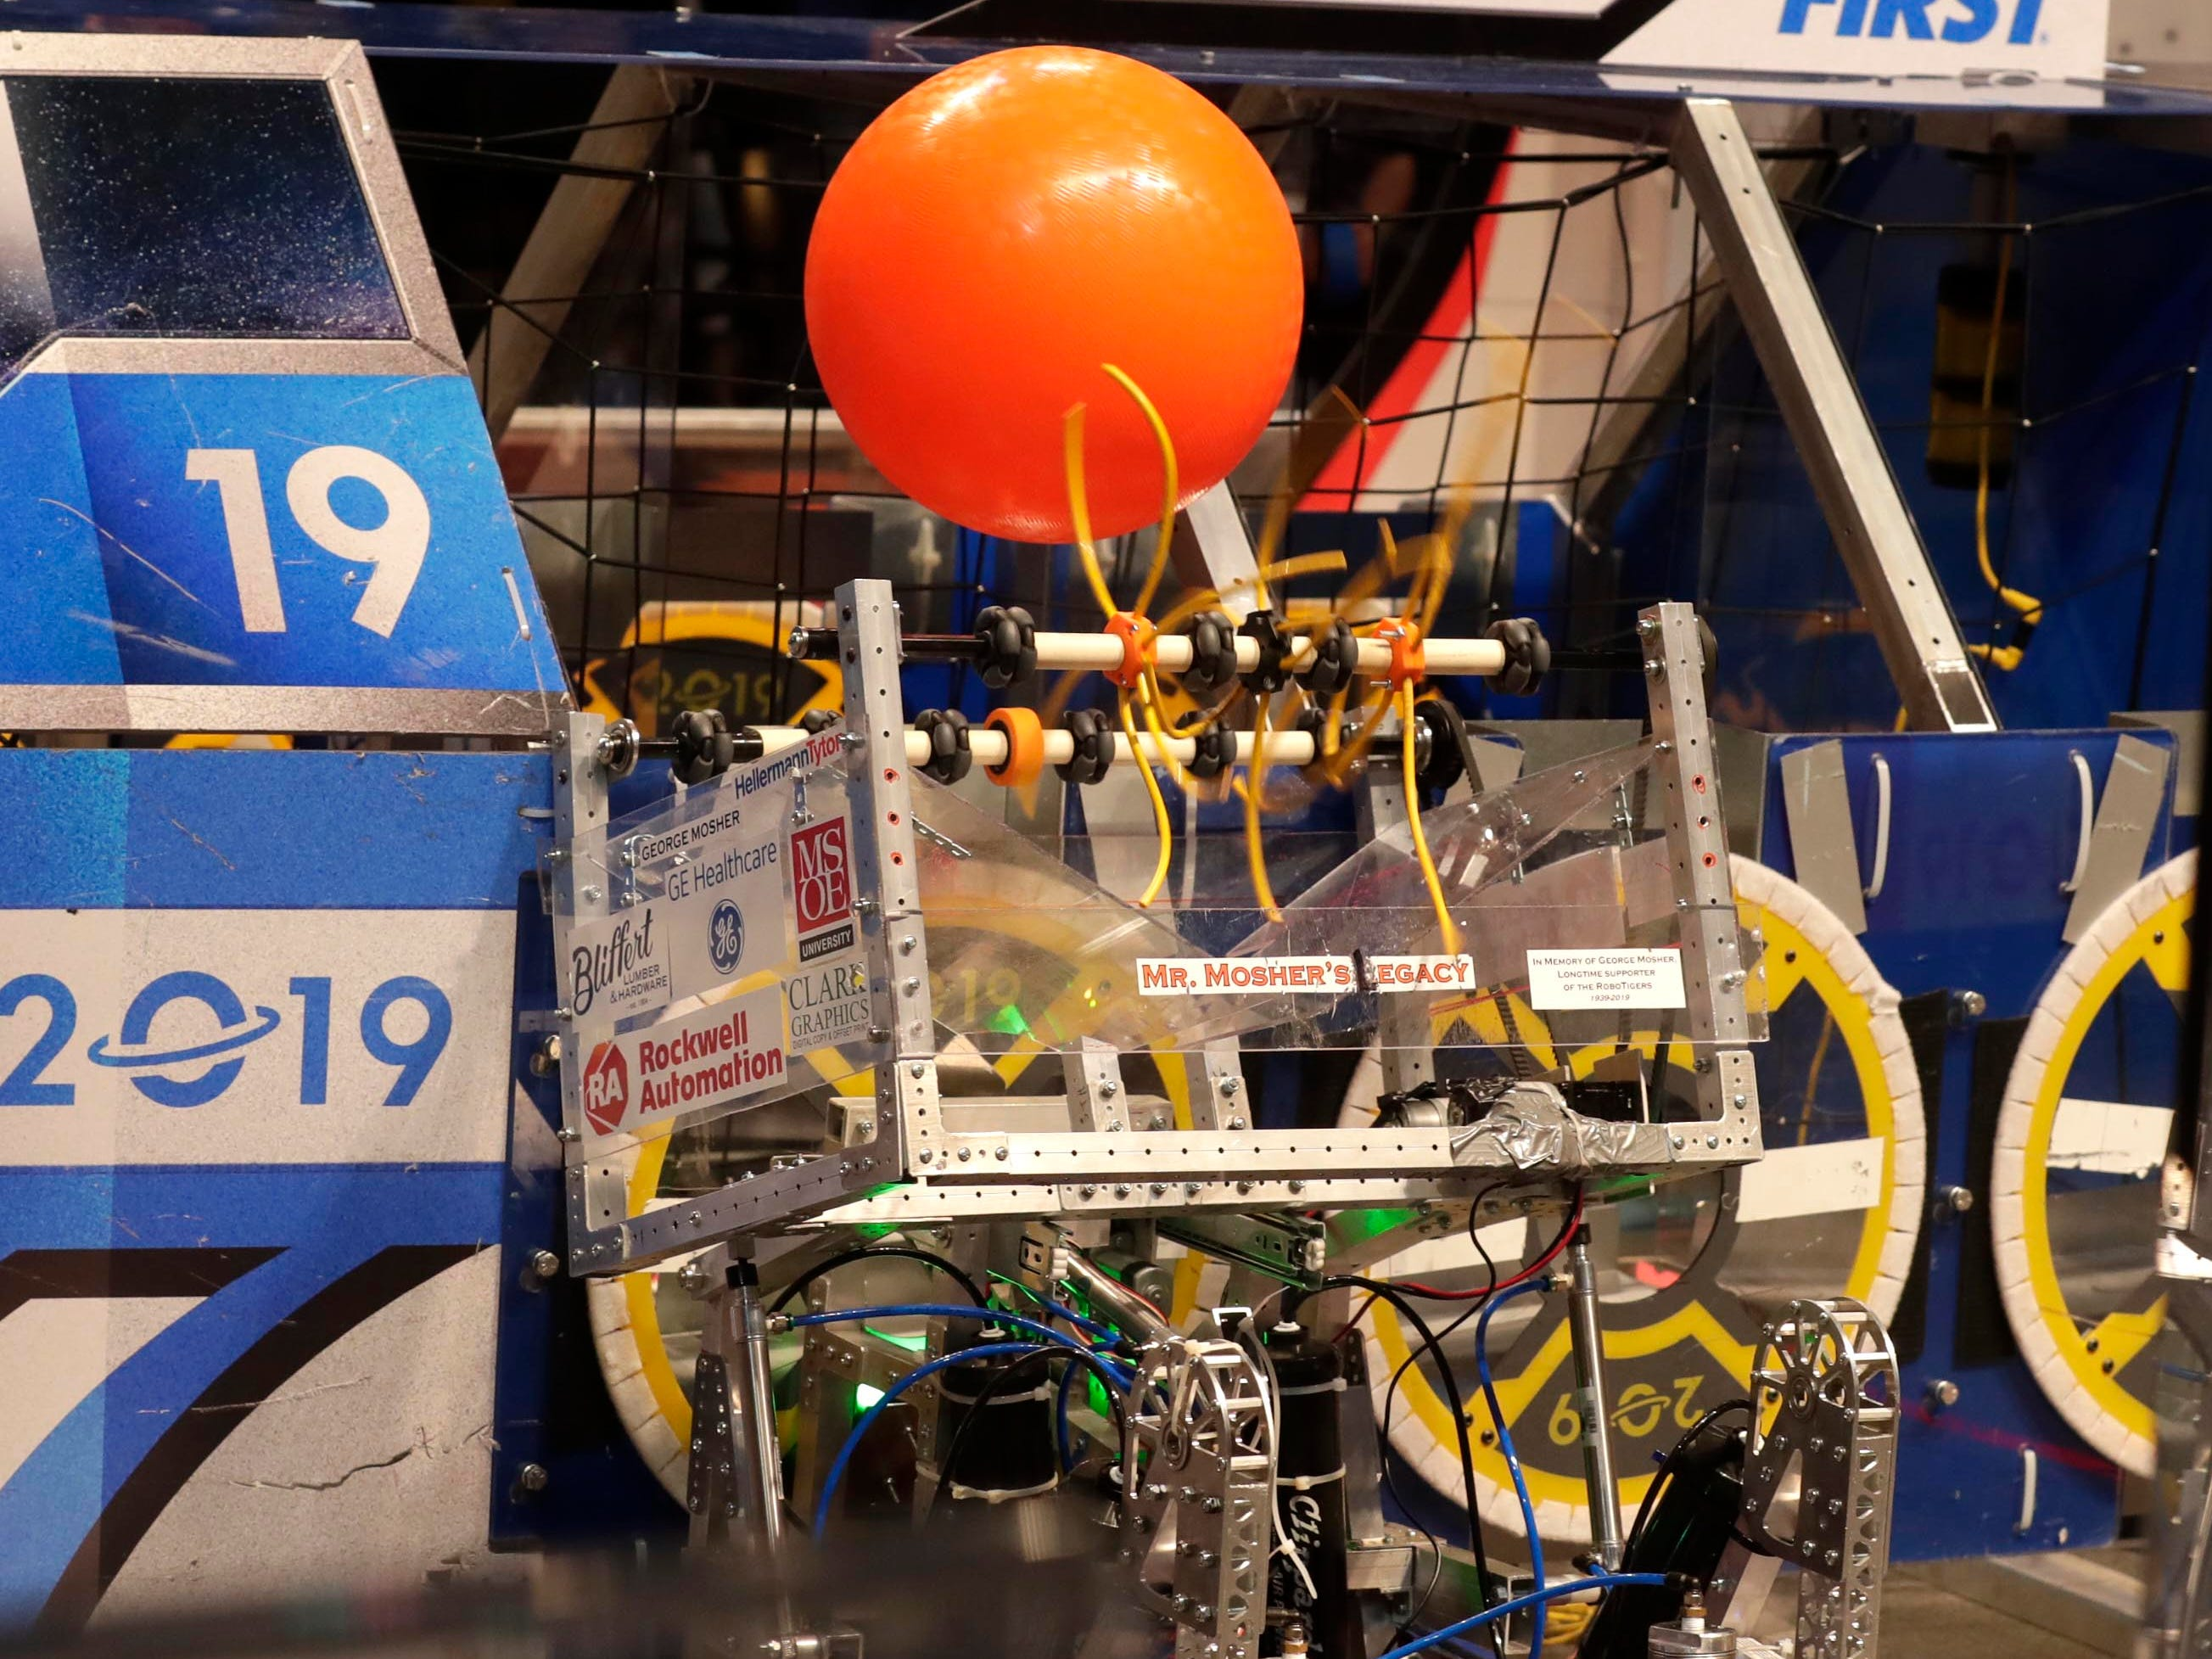 Team members activate a spinning wire that moves a ball out of a basket into a hopper to score points during competition at the  U.S. First 2019 Wisconsin Regional Robotics Competition.